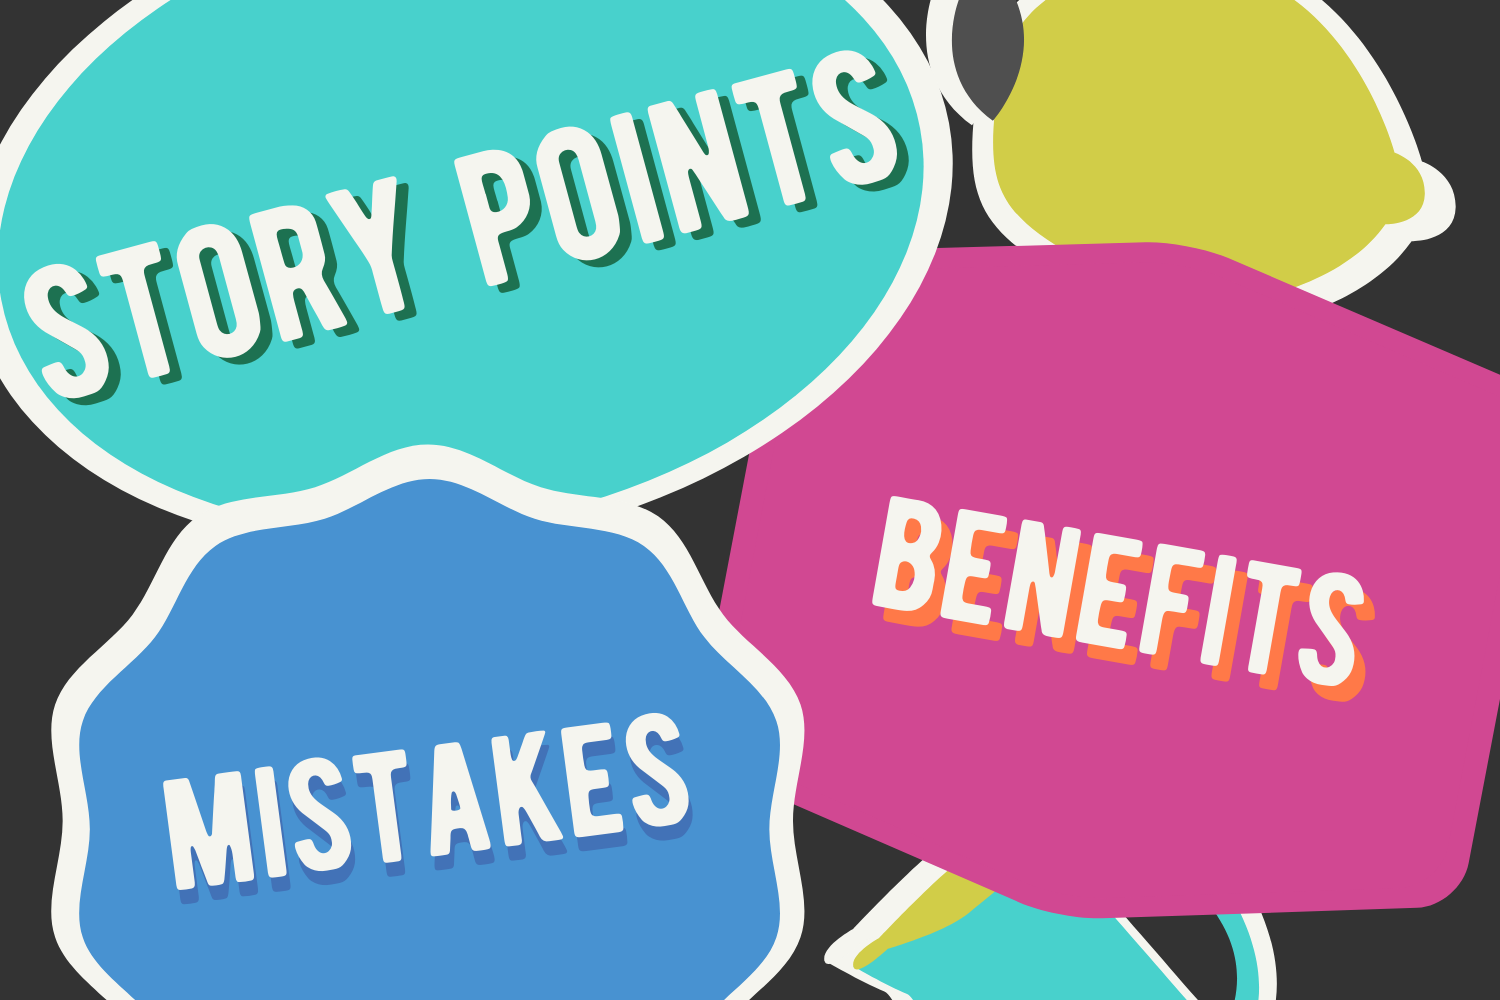 Benefits of story points and the mistakes to avoid